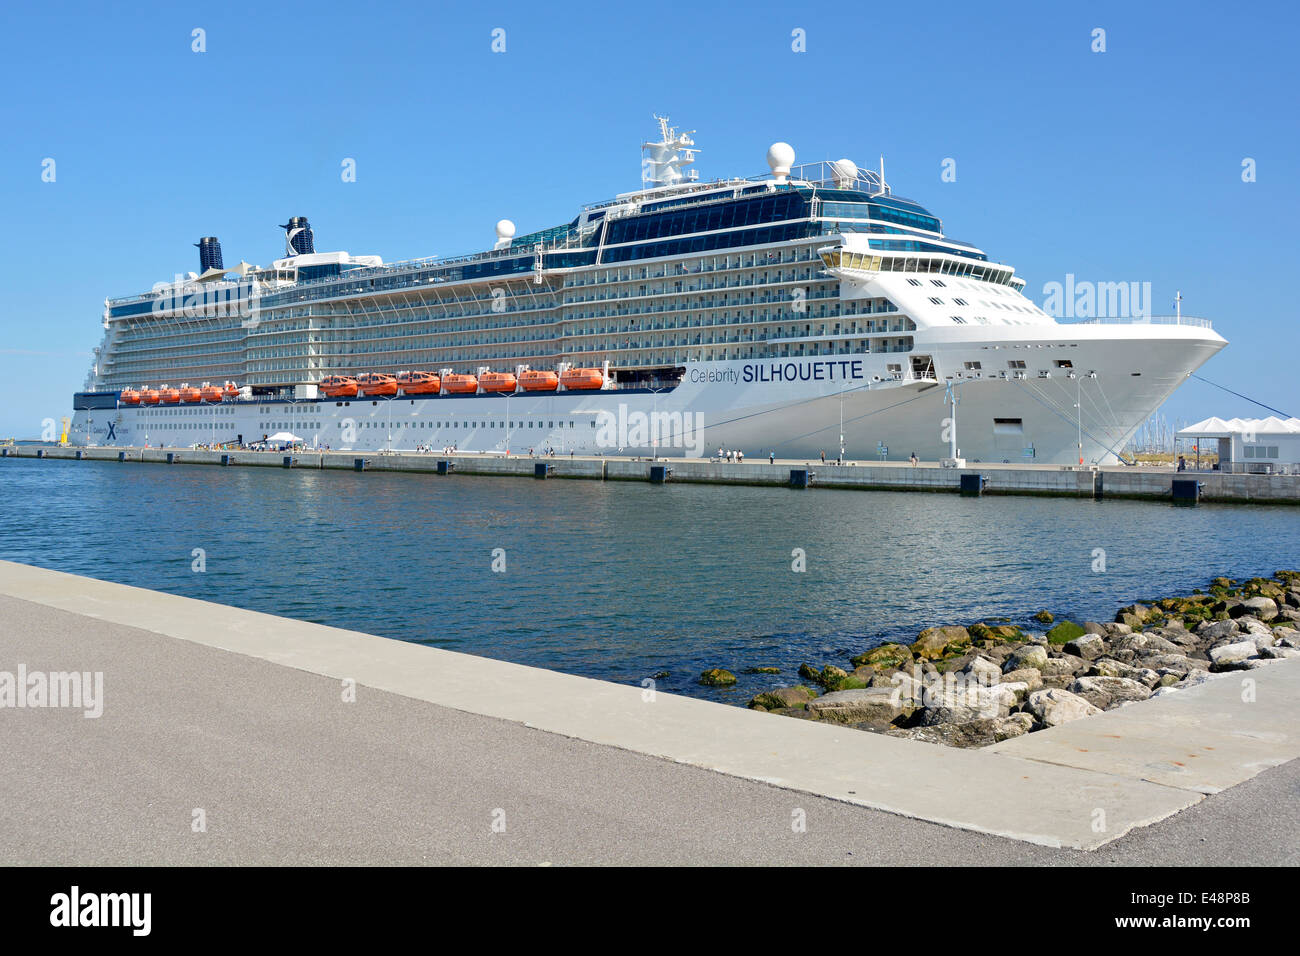 Celebrity Cruises - Civitavecchia Port